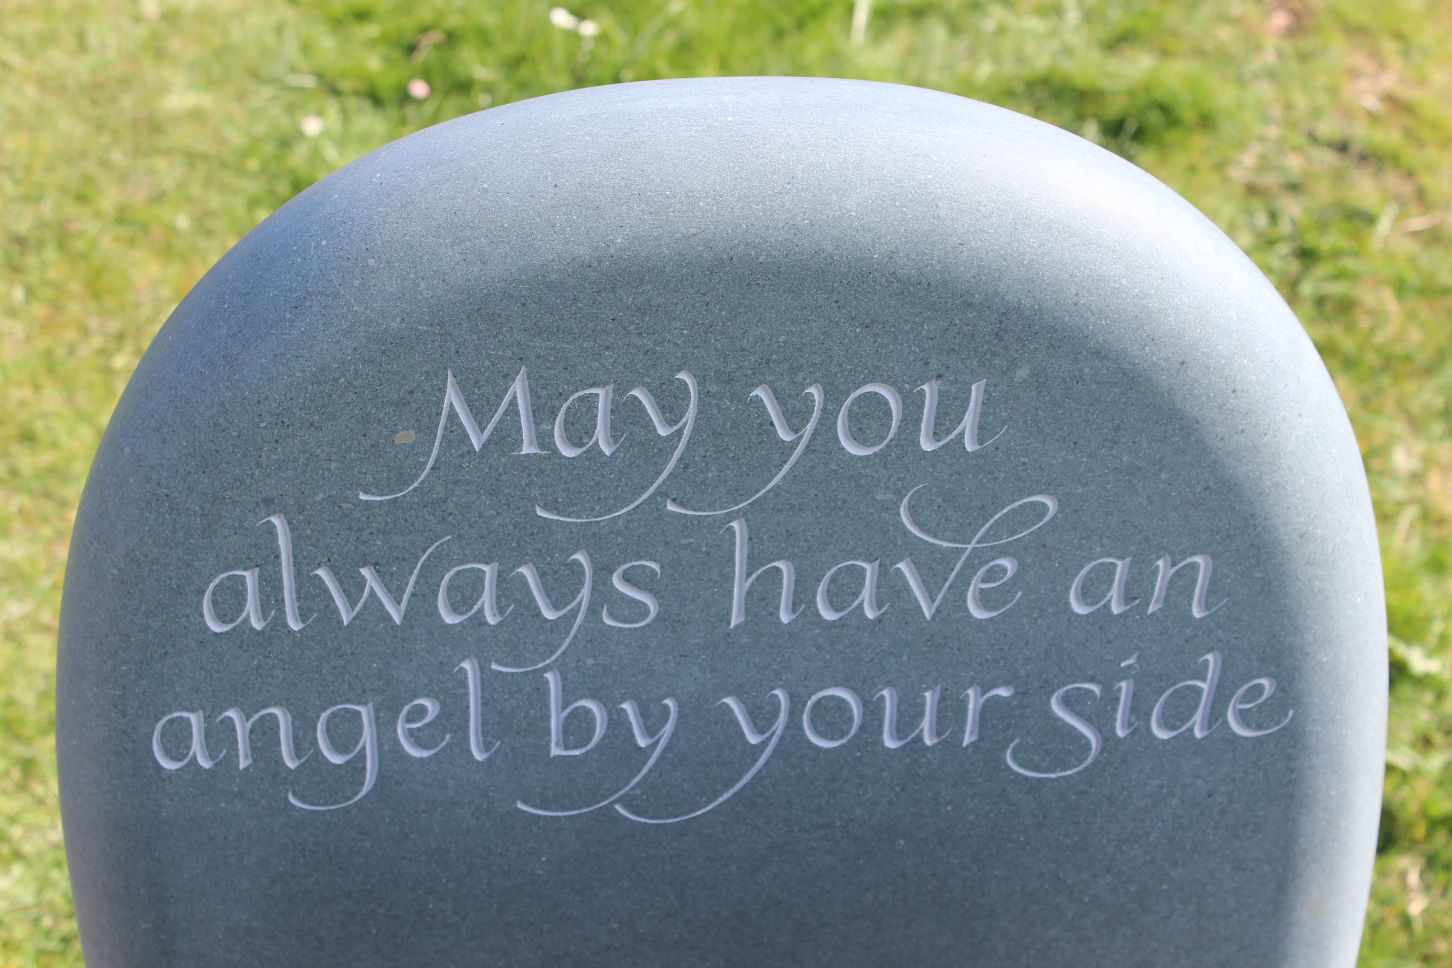 Short Quotes About Death Of A Loved One Stillborn Poems Quotes And Funeral Readings For Baby Loss  Blog